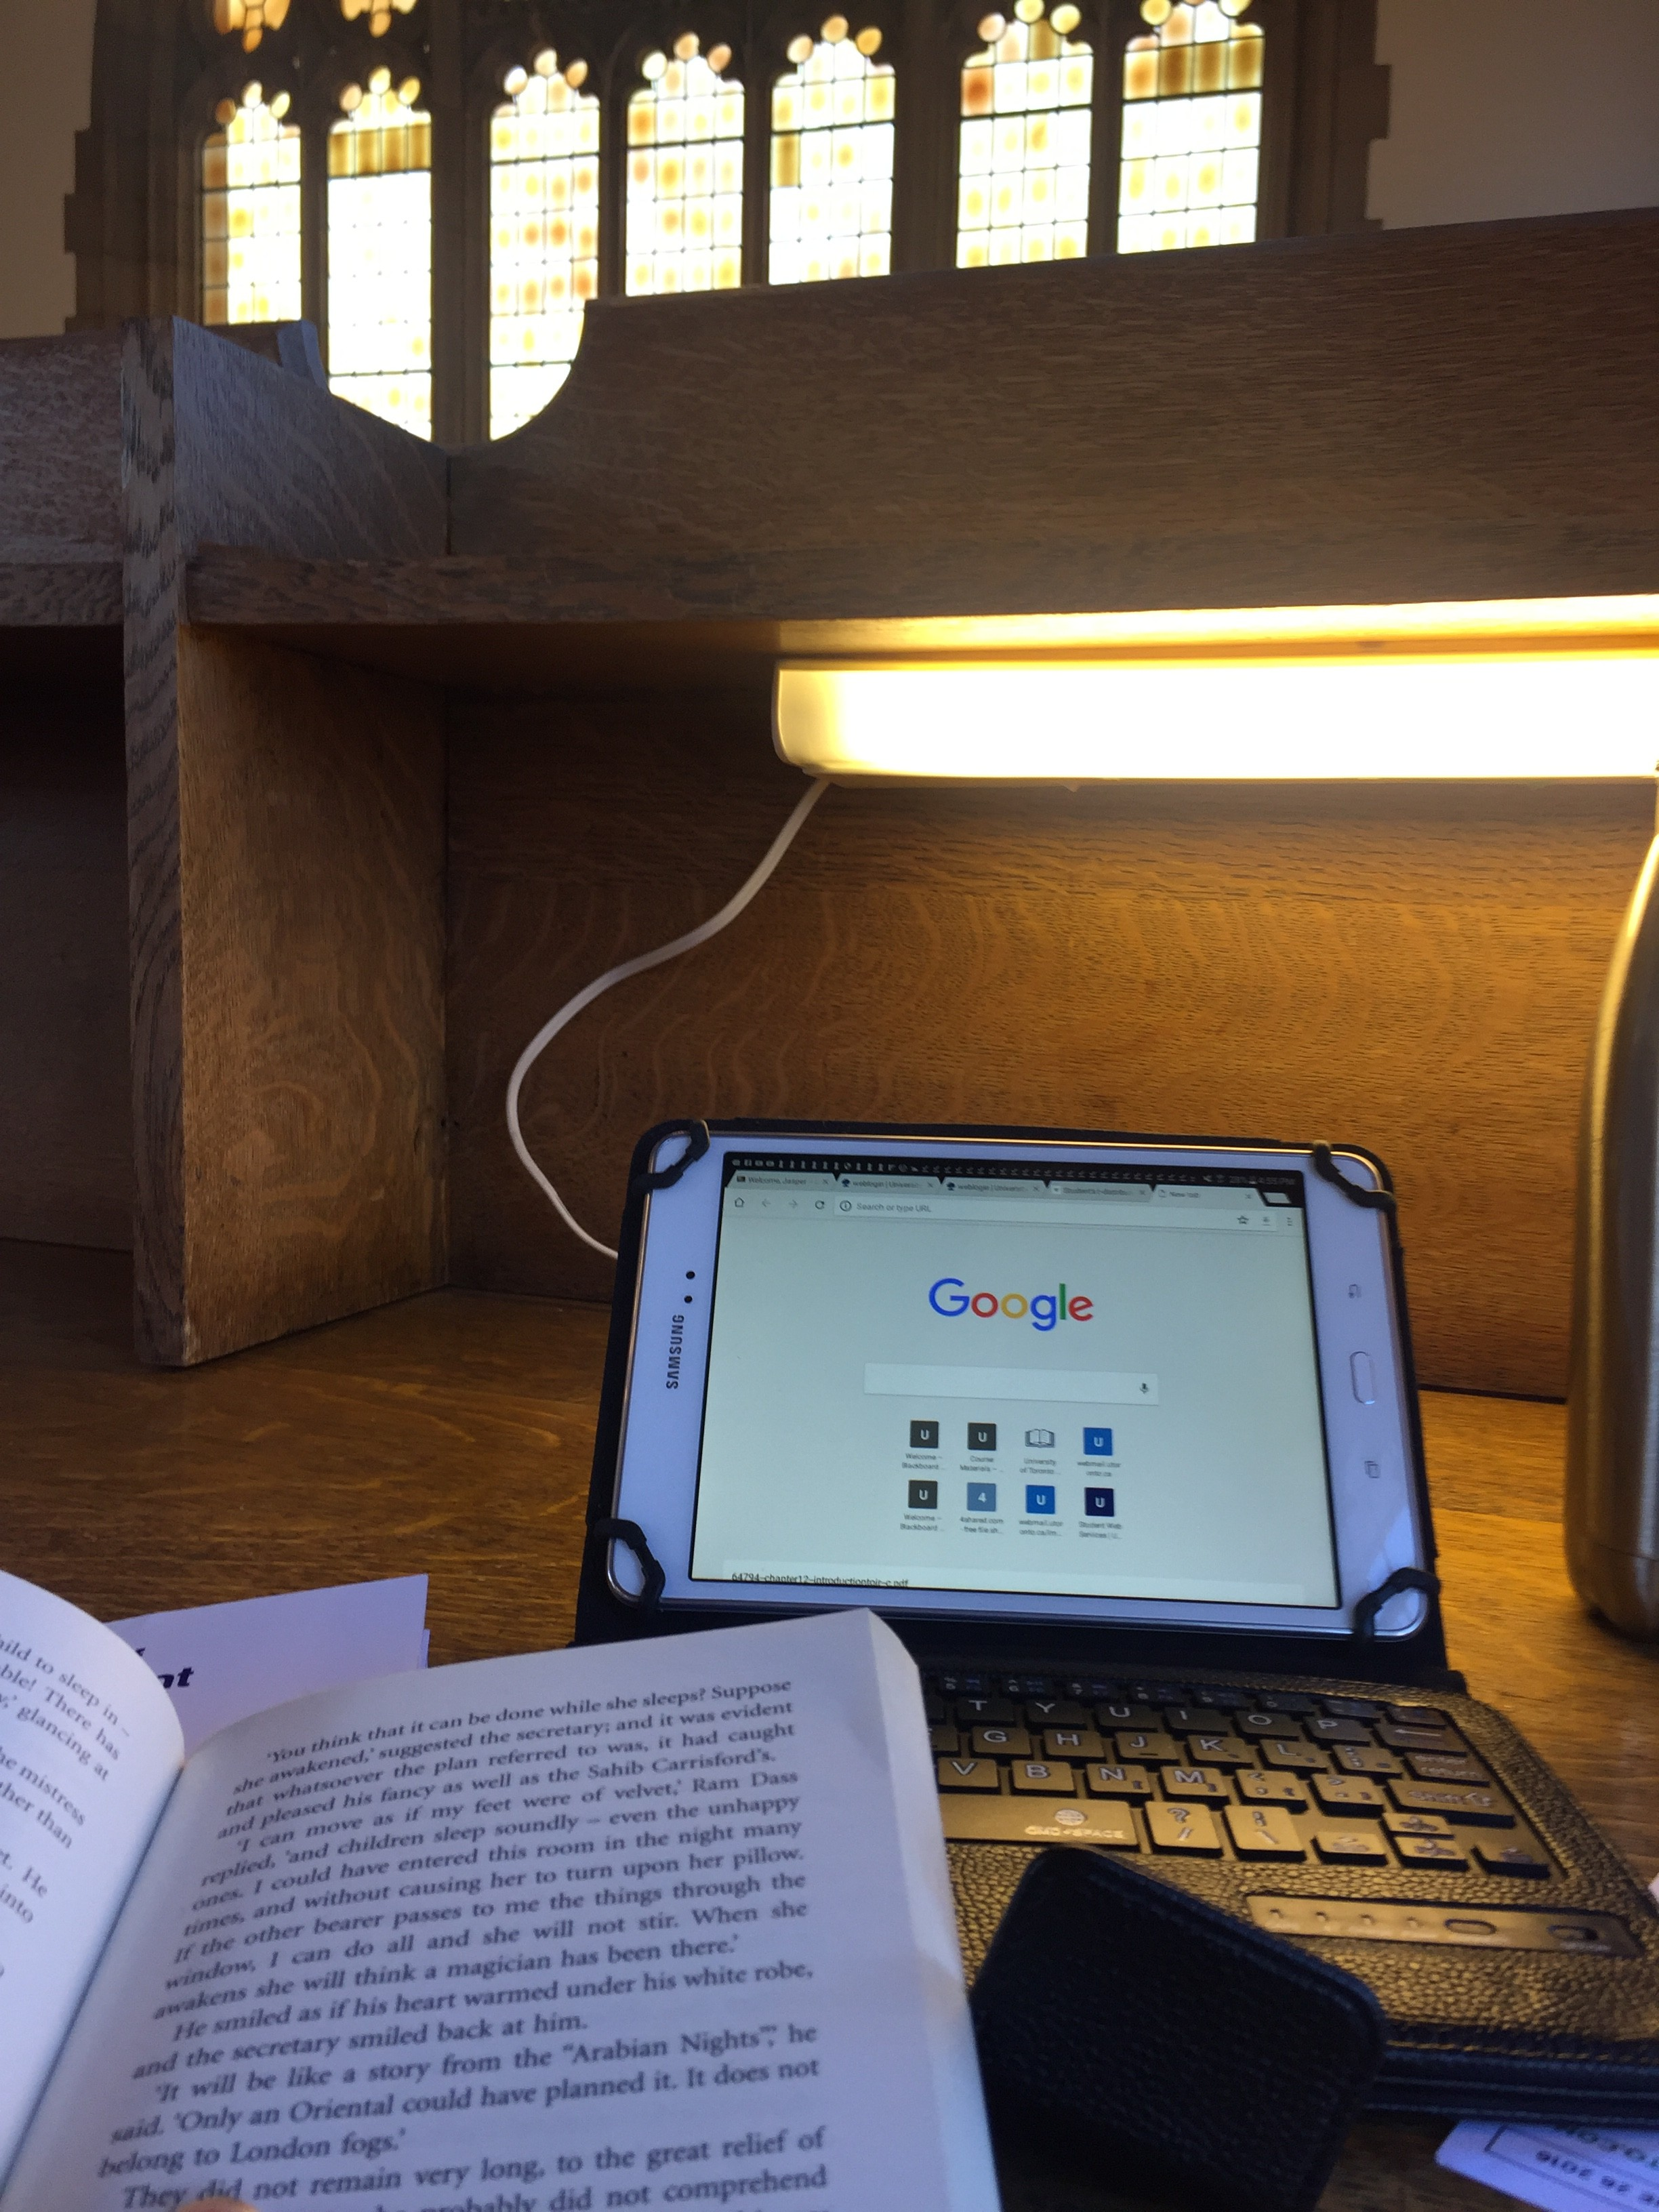 a photo of a work space on a light wooden desk where in the bottom left corner is a top portion of a novel, behind that there is a tablet on the Google homepage in a black case with a keyboard, and besie it is a part of a stainless steel water bottle all backdropped by a large gothic style yellow window